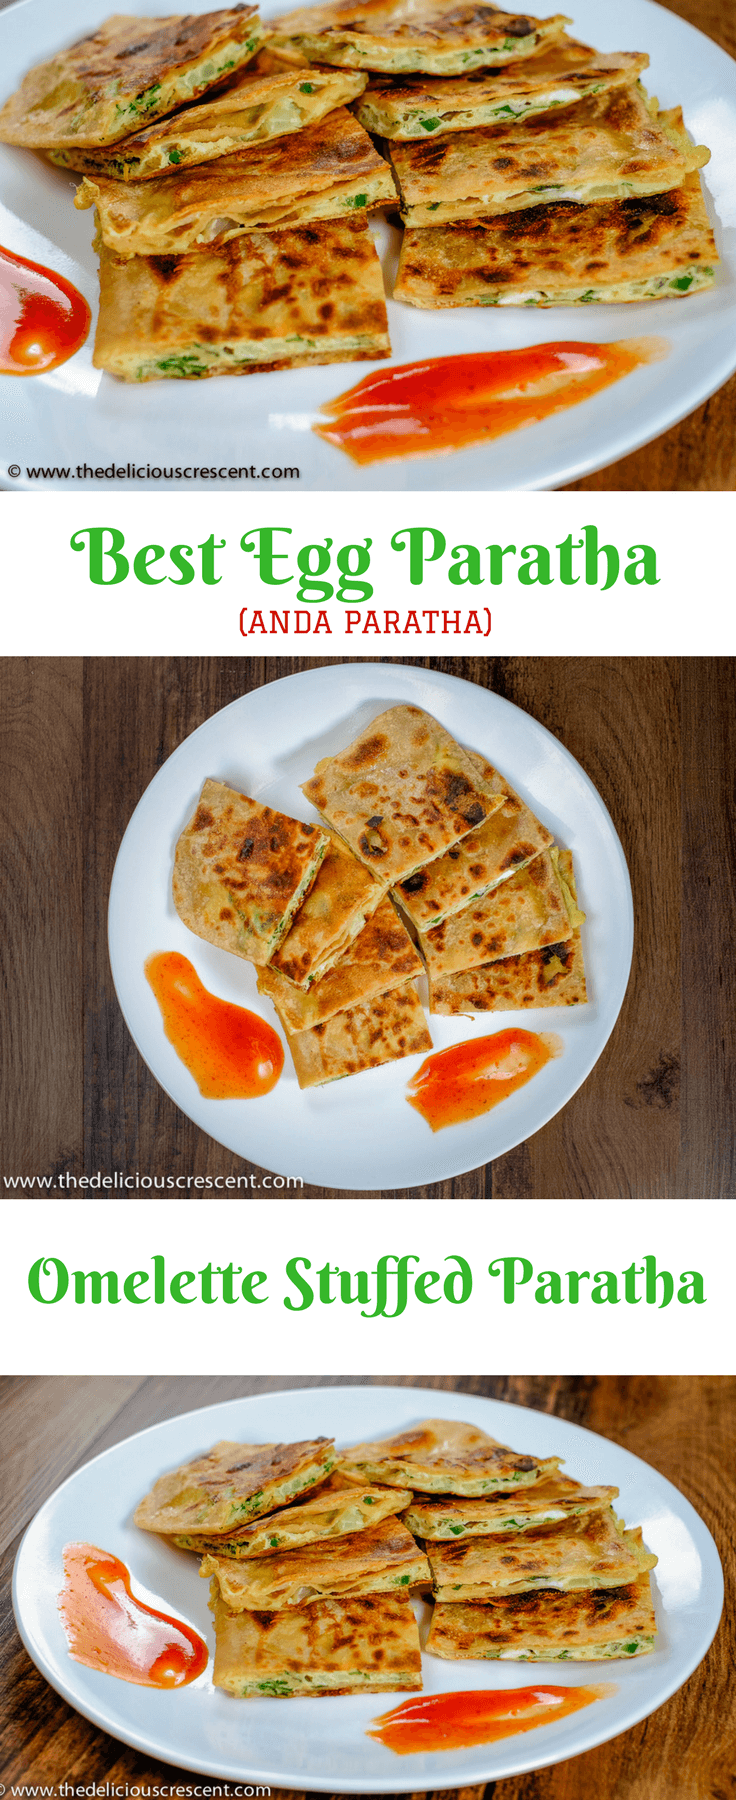 Egg paratha (Anda paratha) is omelette stuffed in a layered flat bread. It is a traditional Indian breakfast that is whole grain with high quality protein and good fiber. | Flatbread | #Indian #vegetarian #bread #nutfree #dairyfree